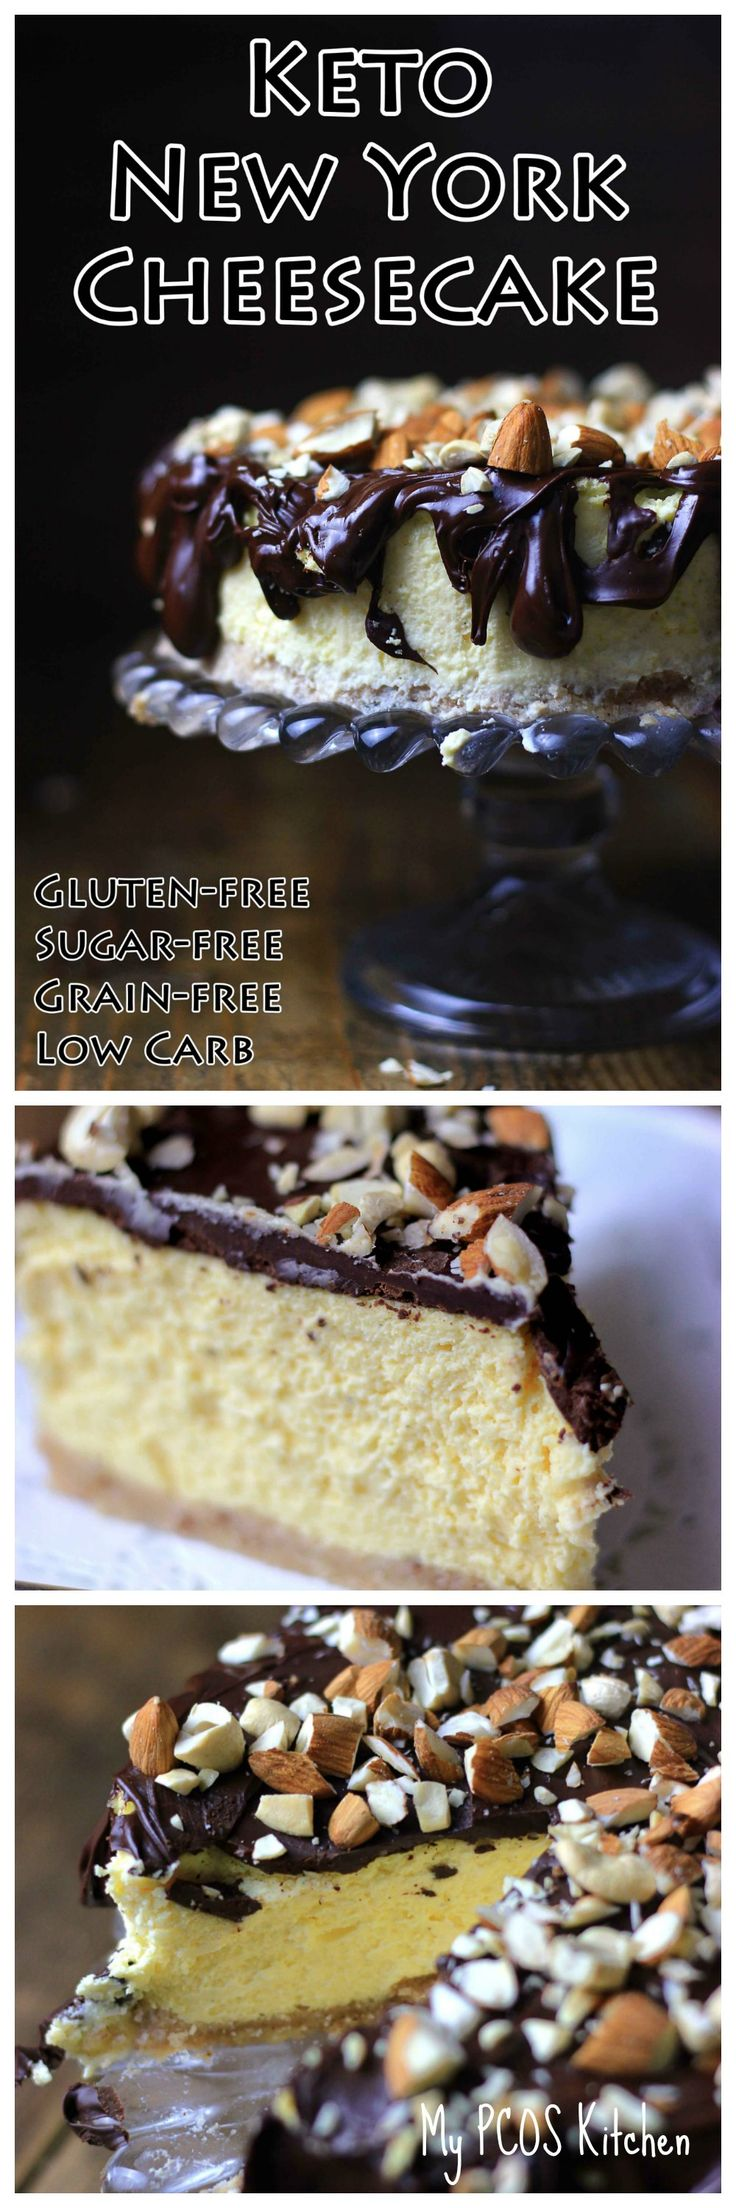 My PCOS Kitchen - Keto New York Cheesecake - This decadent sugar-free and gluten-free cheesecake is the perfect treat for any day of the week! Who doesn't love a Low Carb Cheesecakes!